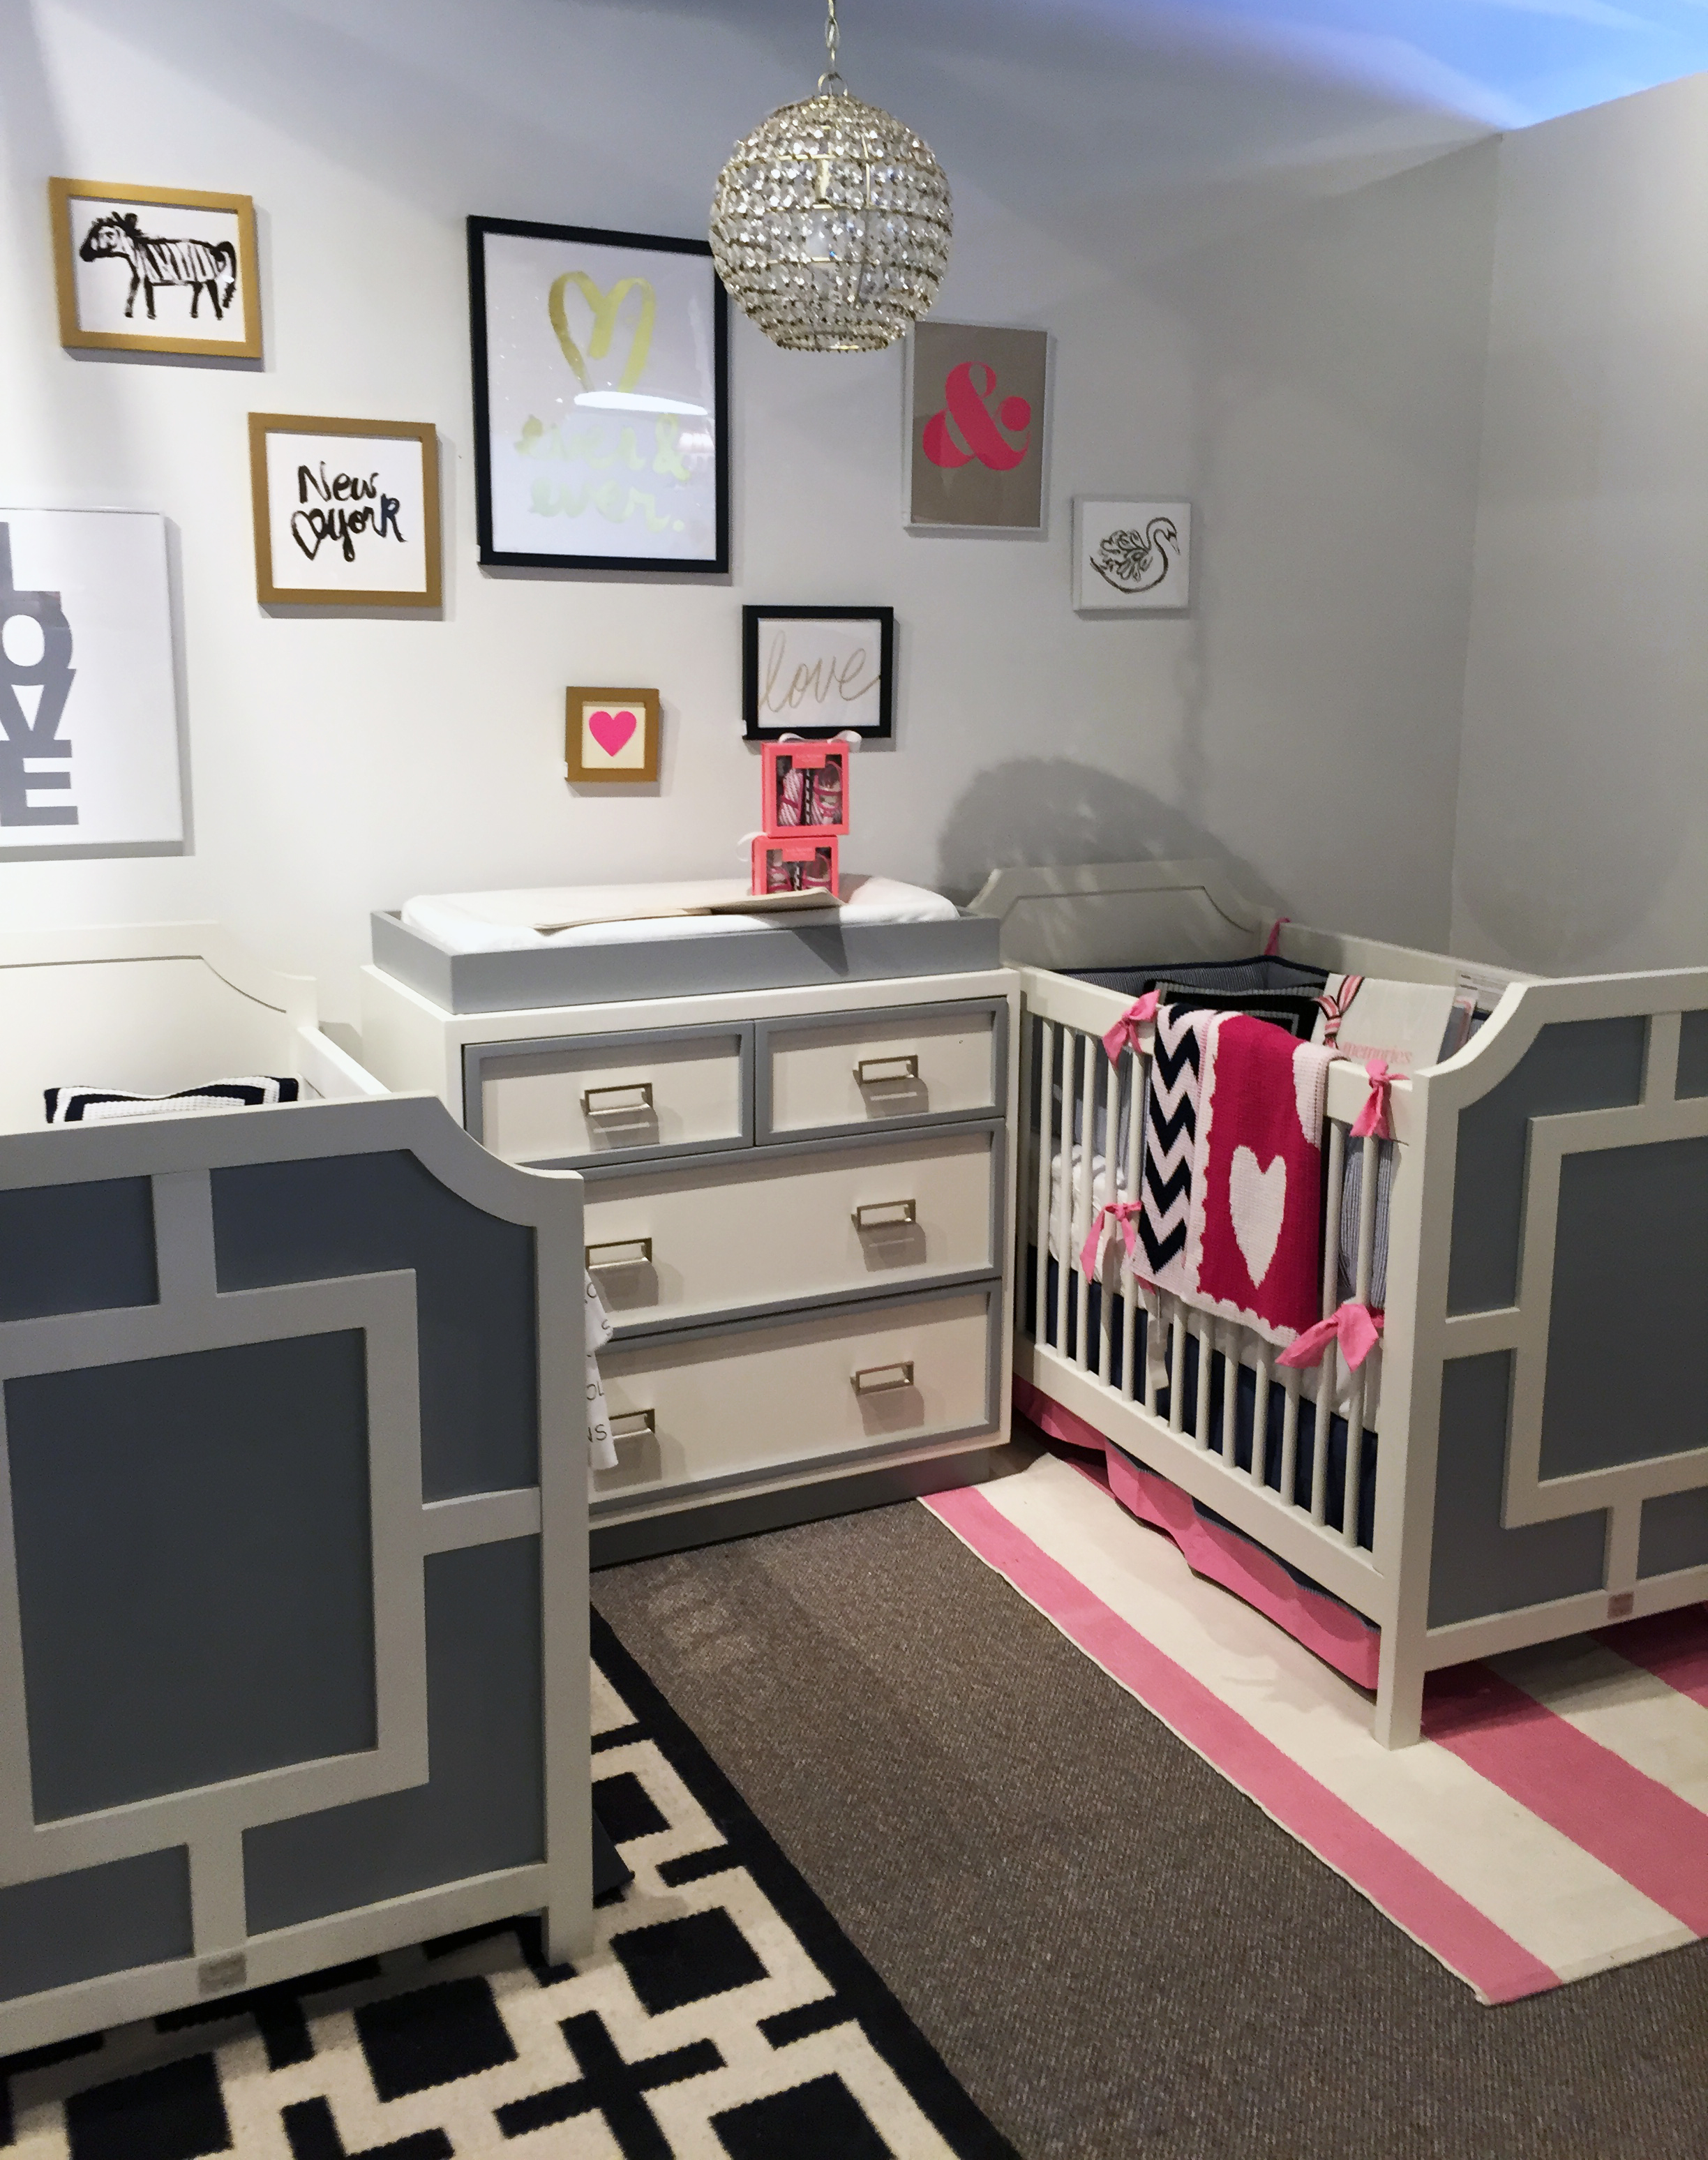 Toddler Boy Room Design: Tips For Decorating For Twins